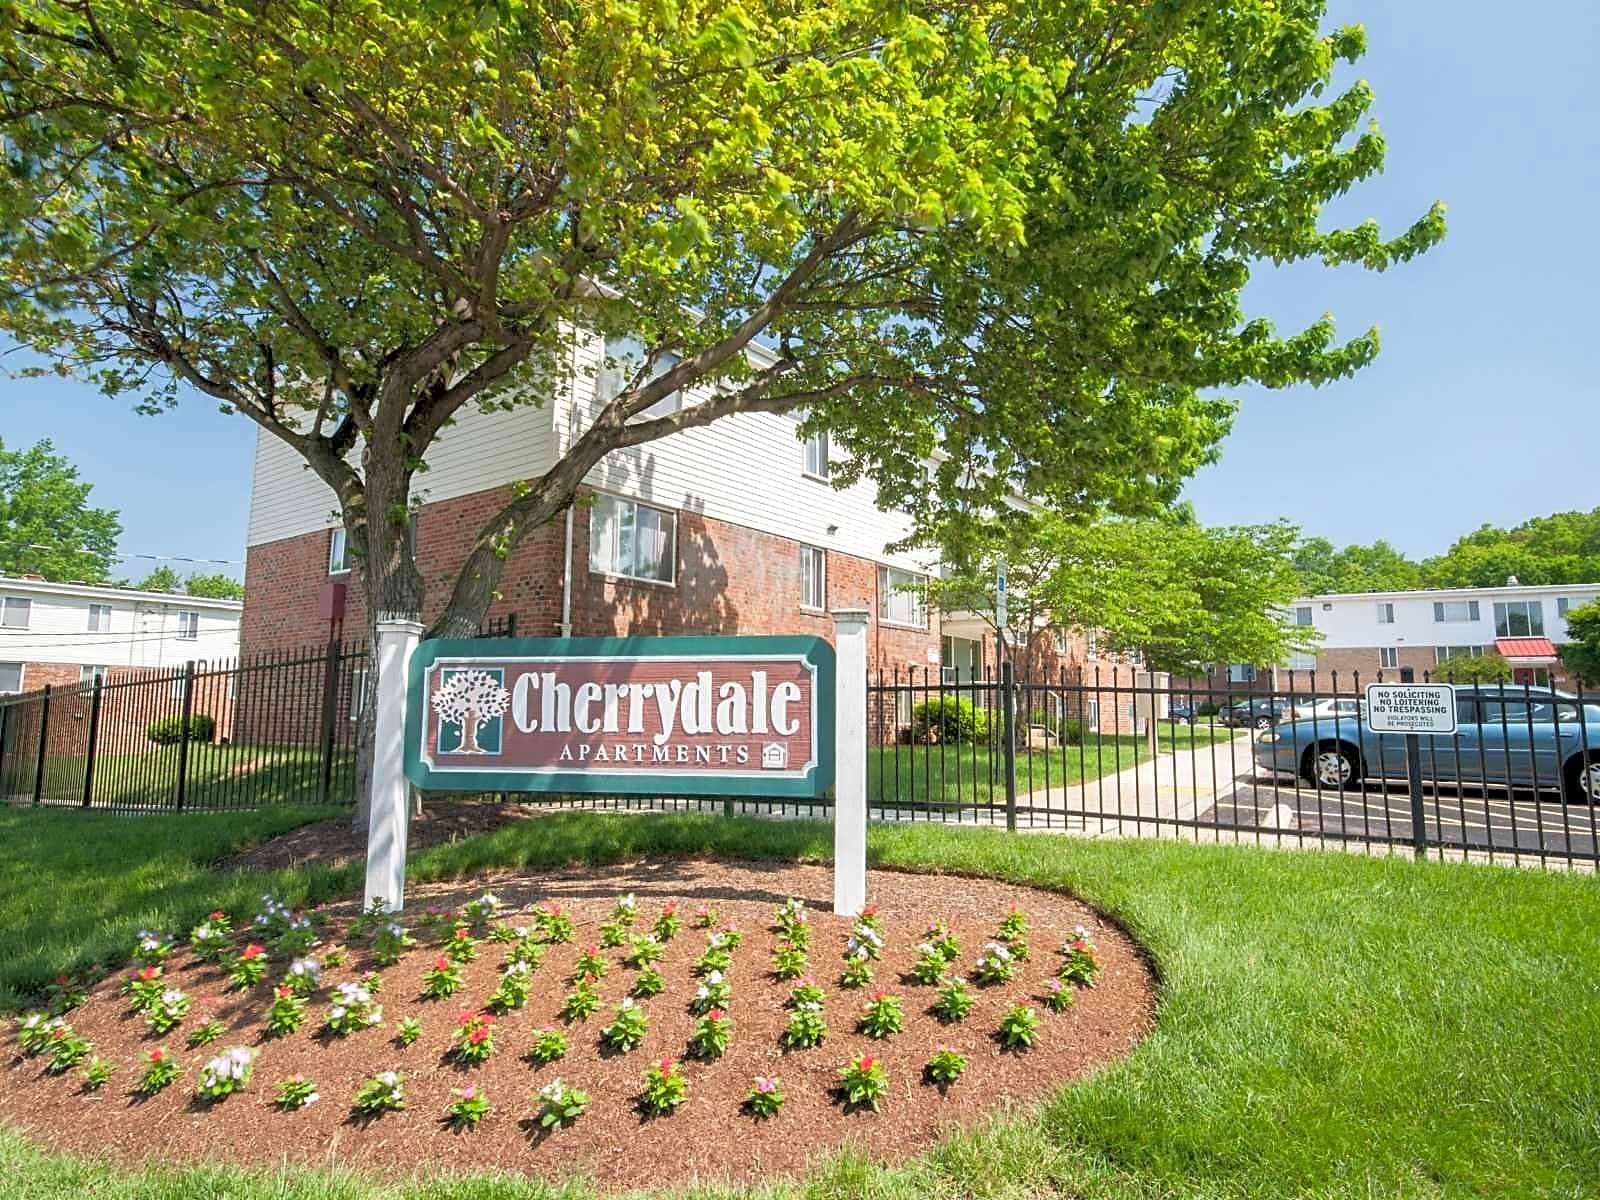 Photo: Baltimore Apartment for Rent - $642.00 / month; 1 Bd & 1 Ba